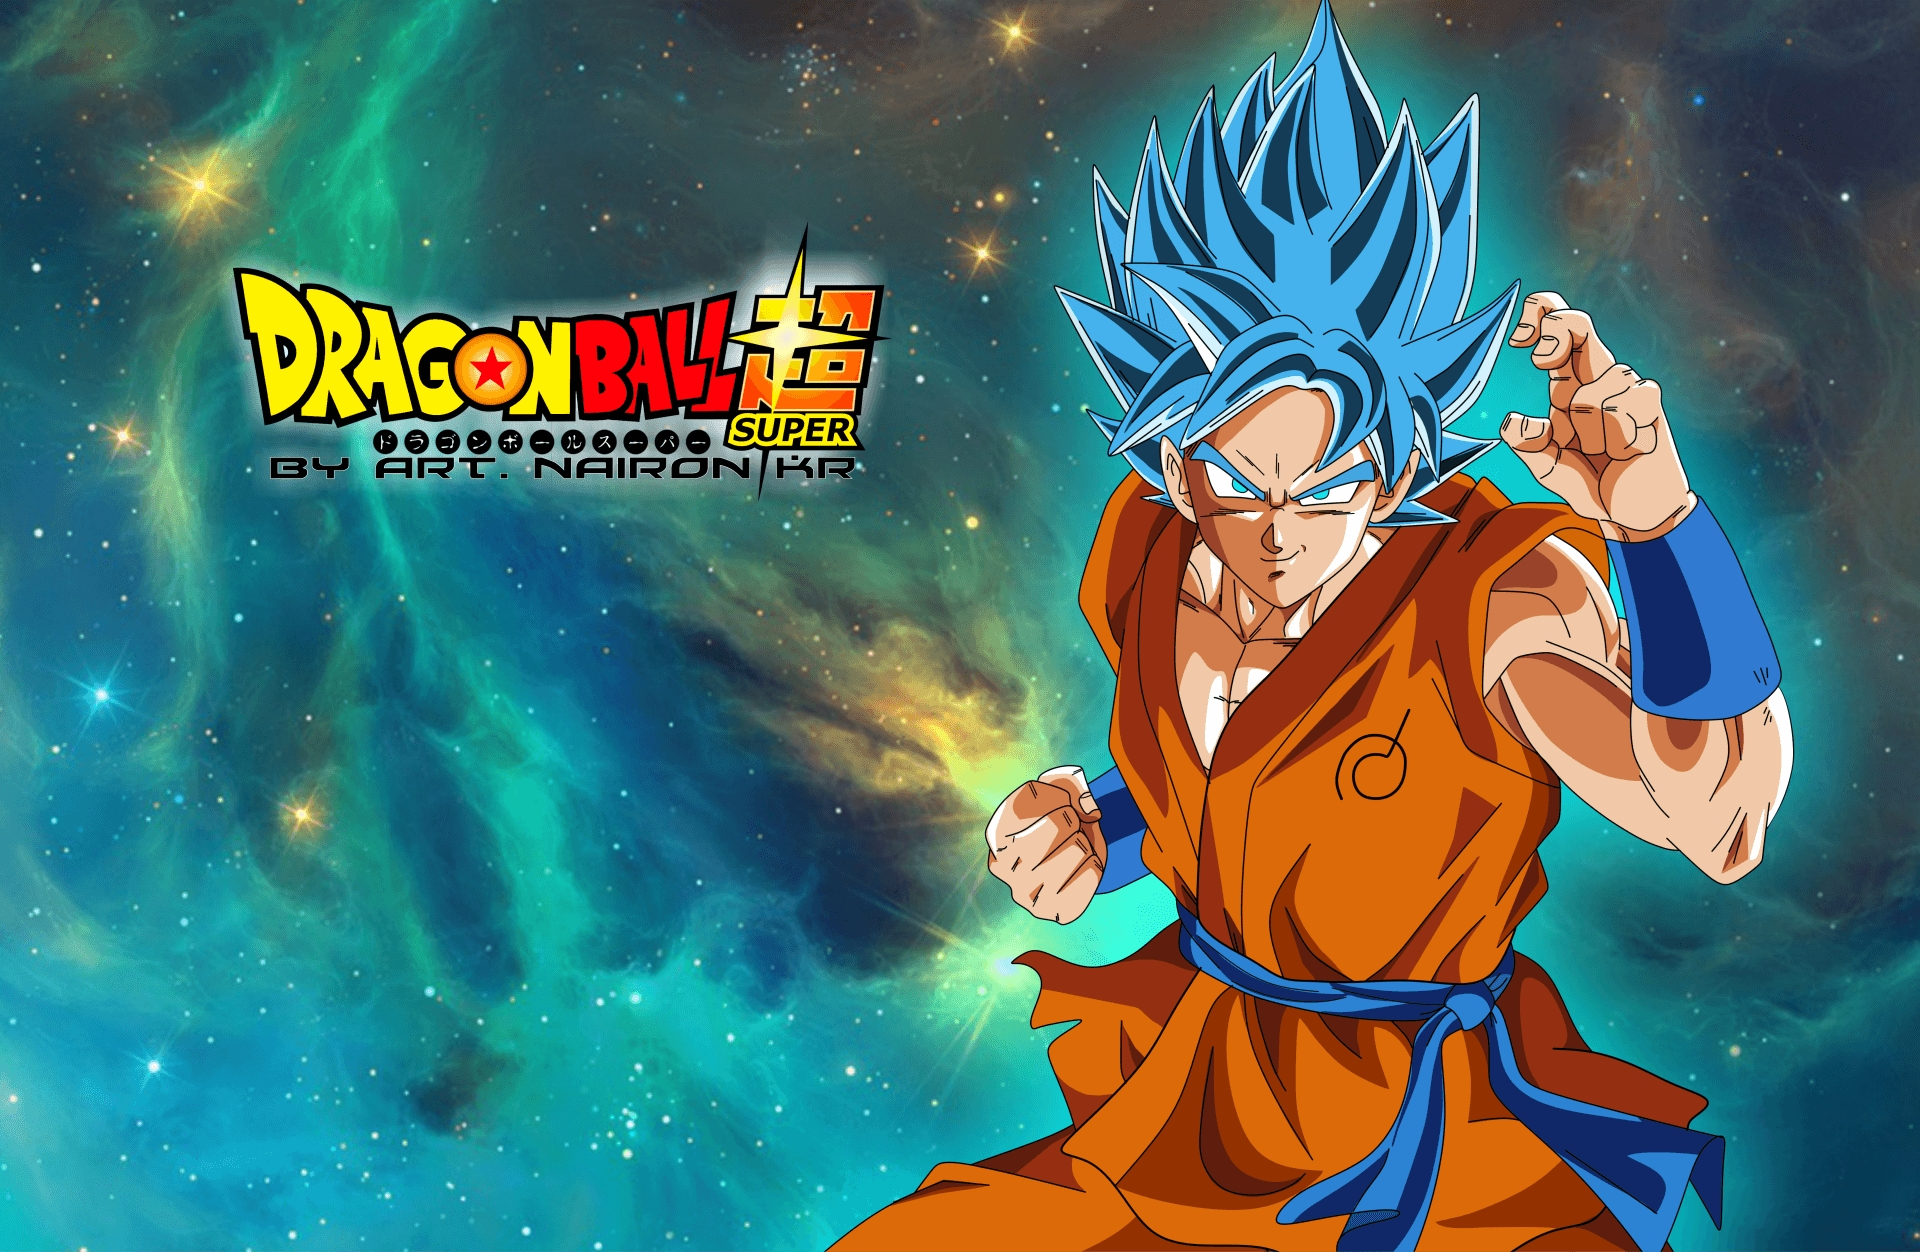 dragon ball super wallpapers - wallpaper cave